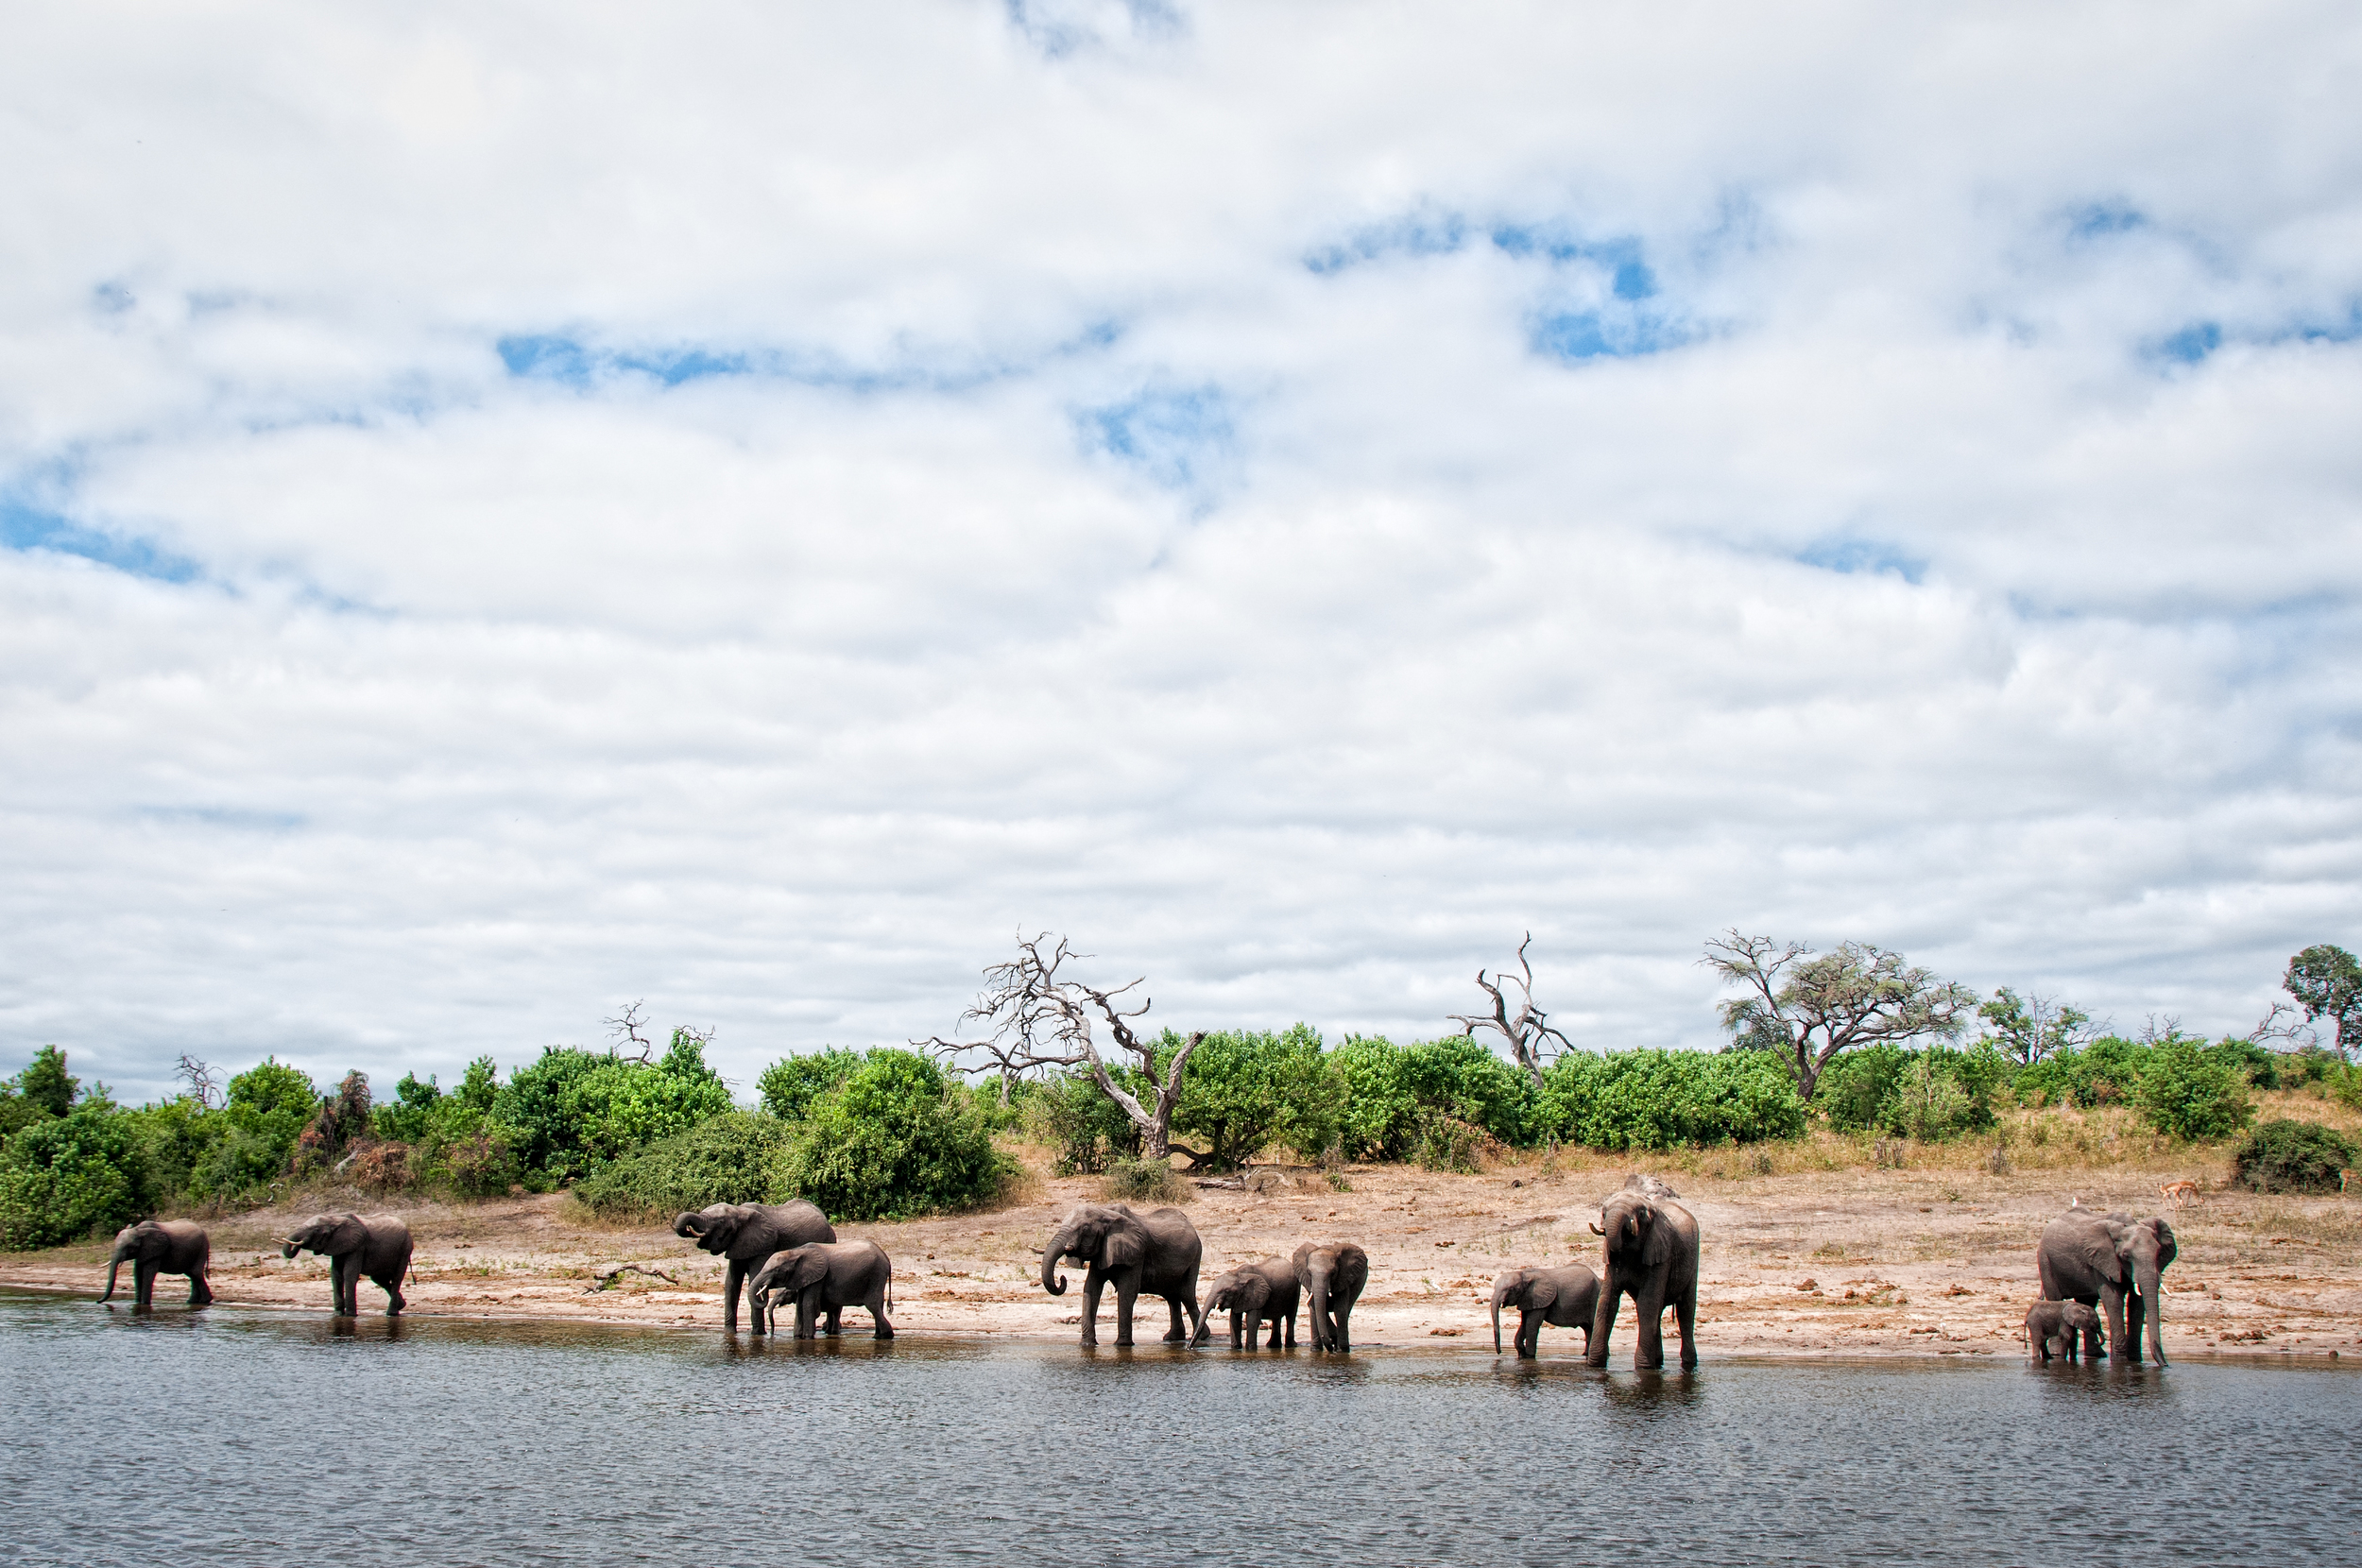 Drinking time, Chobe River